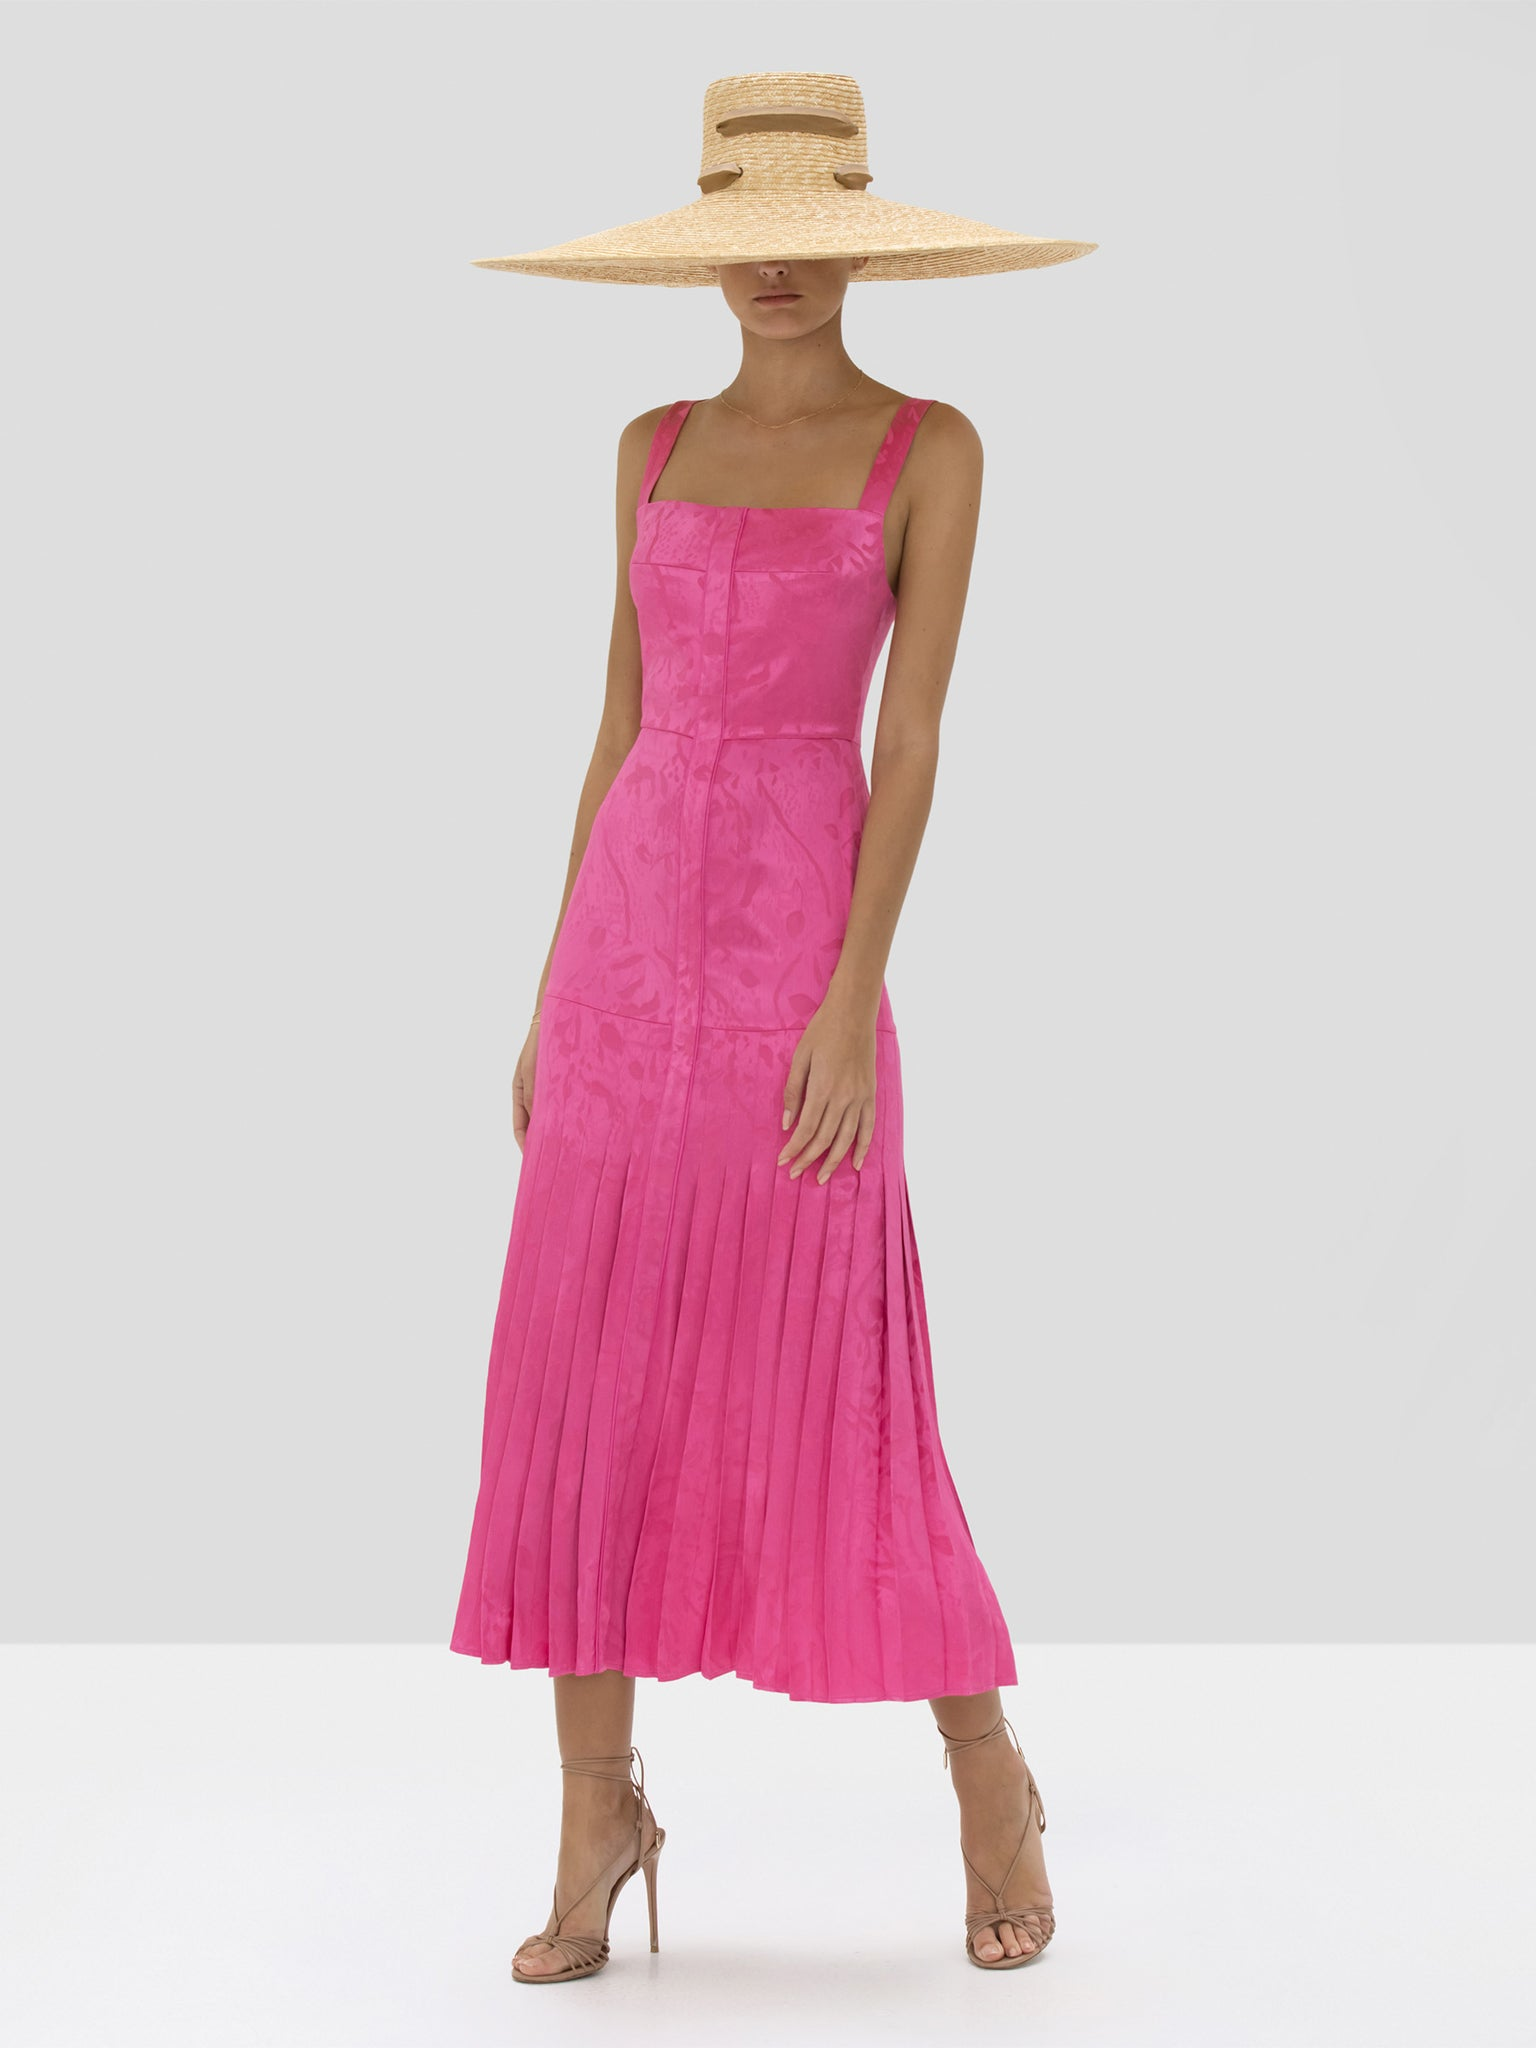 Alexis Lovra Dress in Vivid Fuschia from Spring Summer 2020